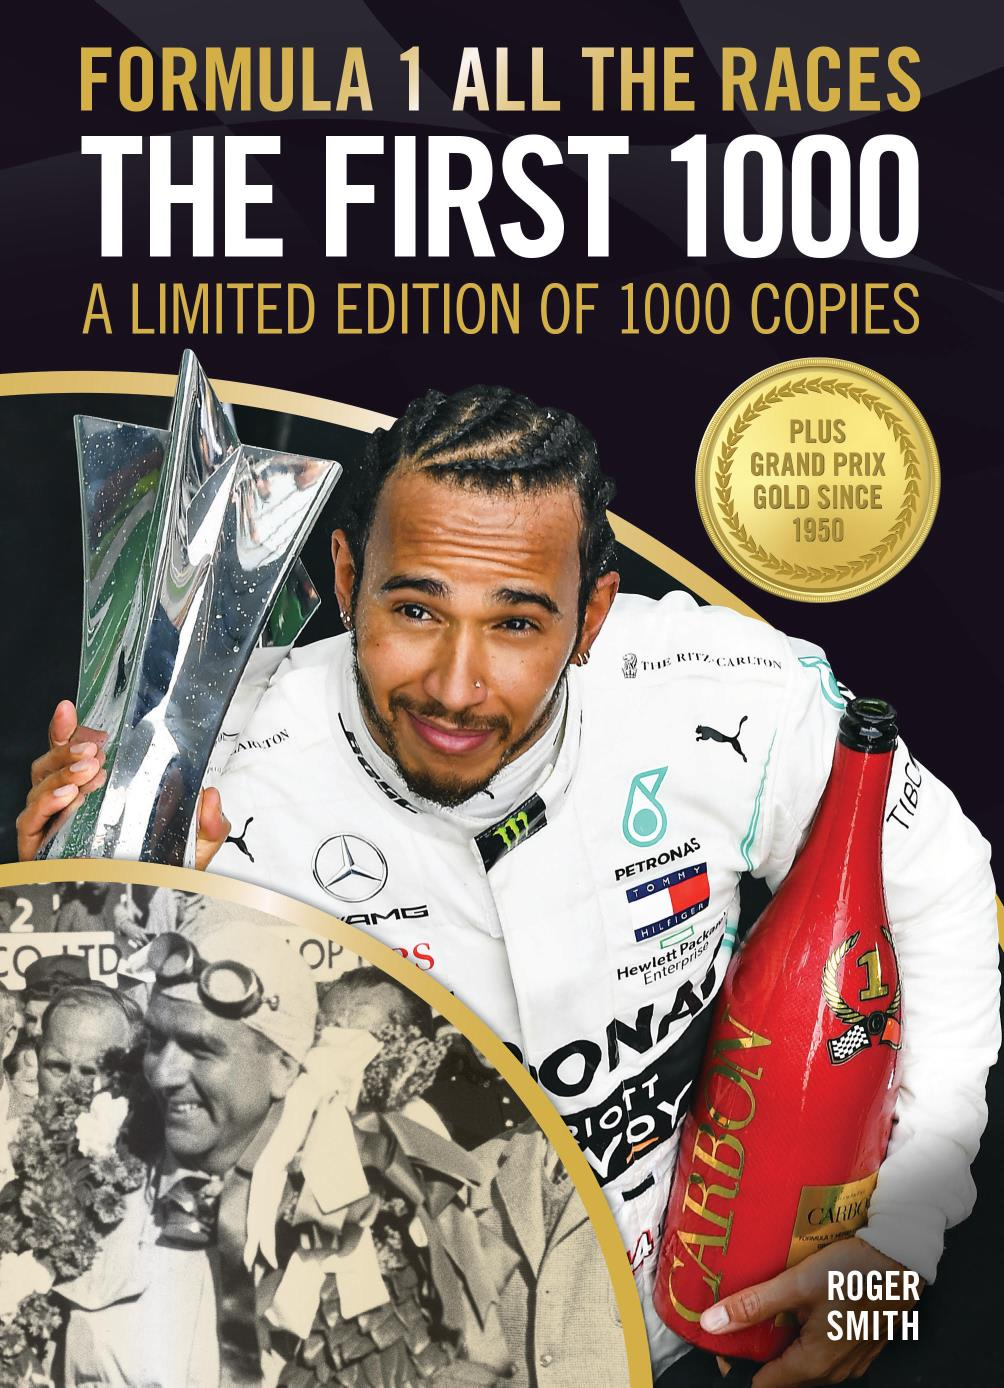 F1, The First 1000 Races